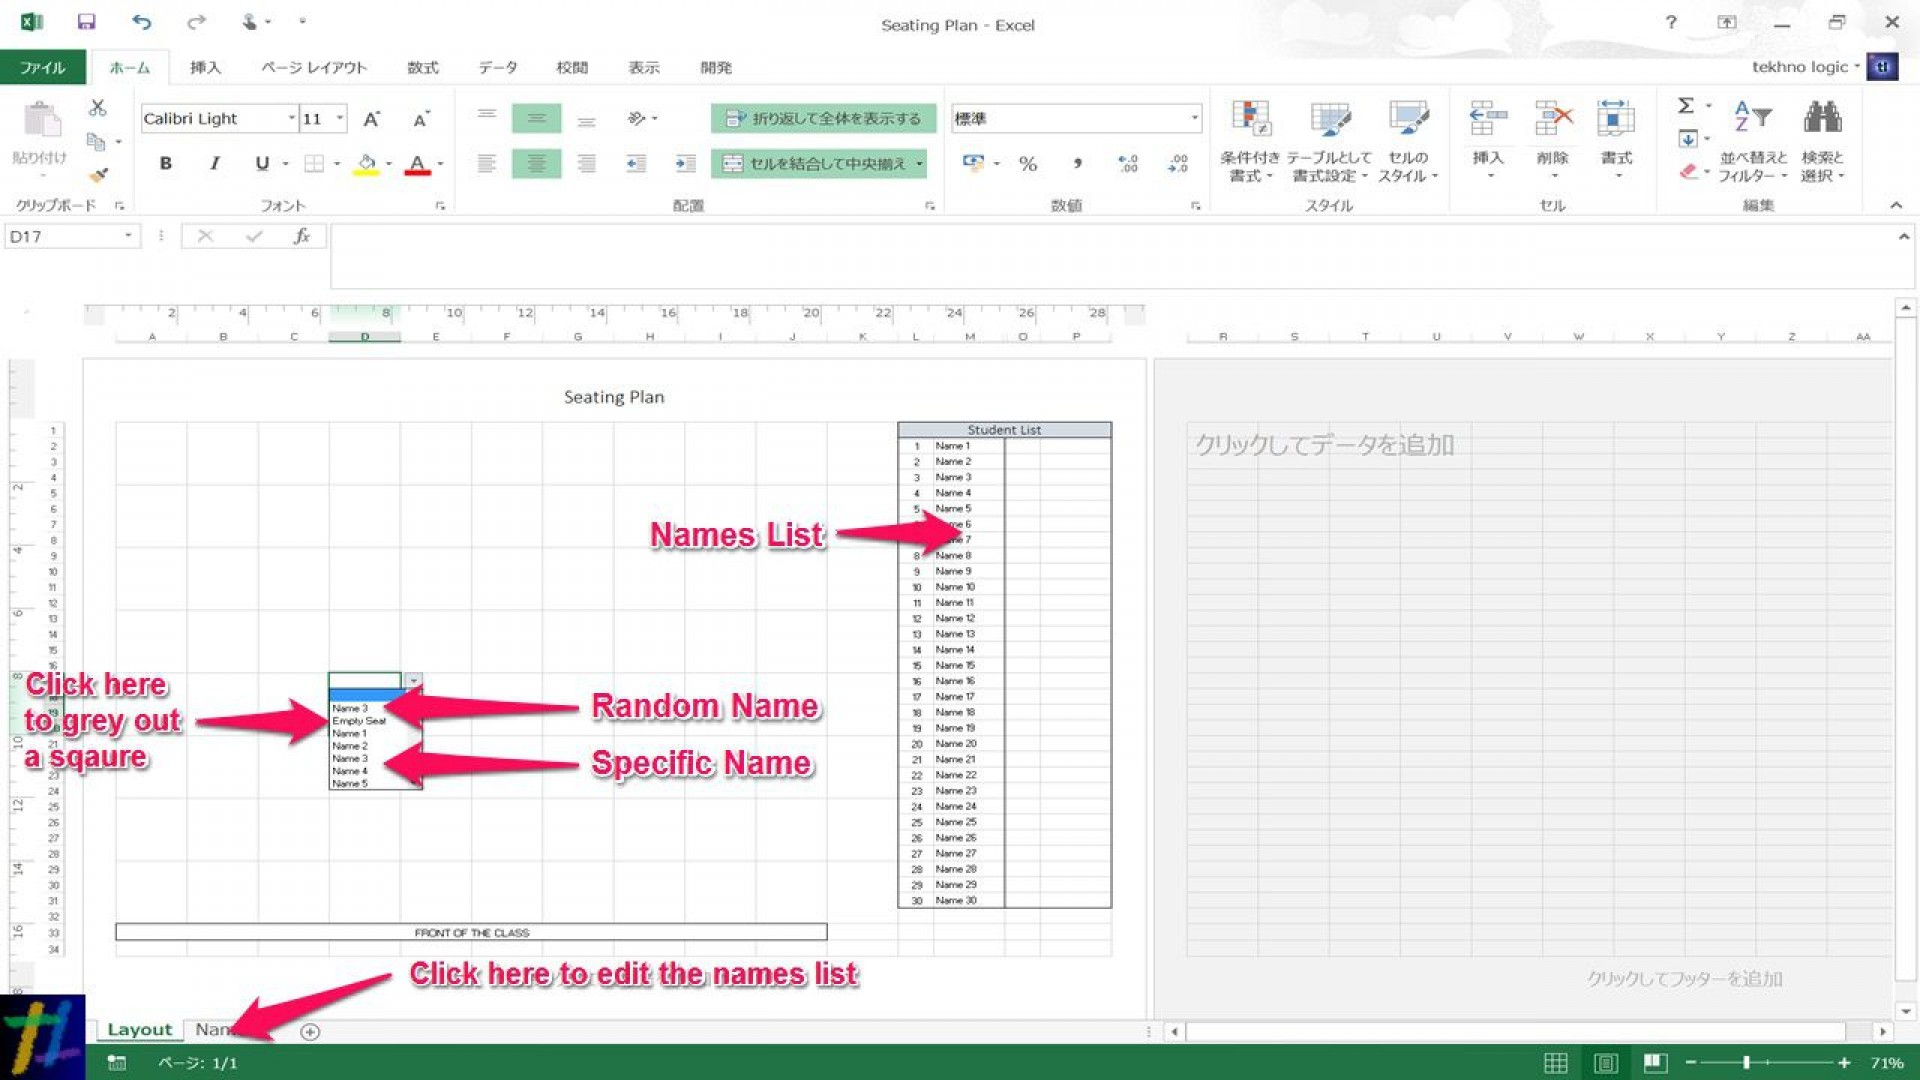 006 Unforgettable Seating Chart Template Excel Idea  Wedding Plan Free Table Microsoft1920